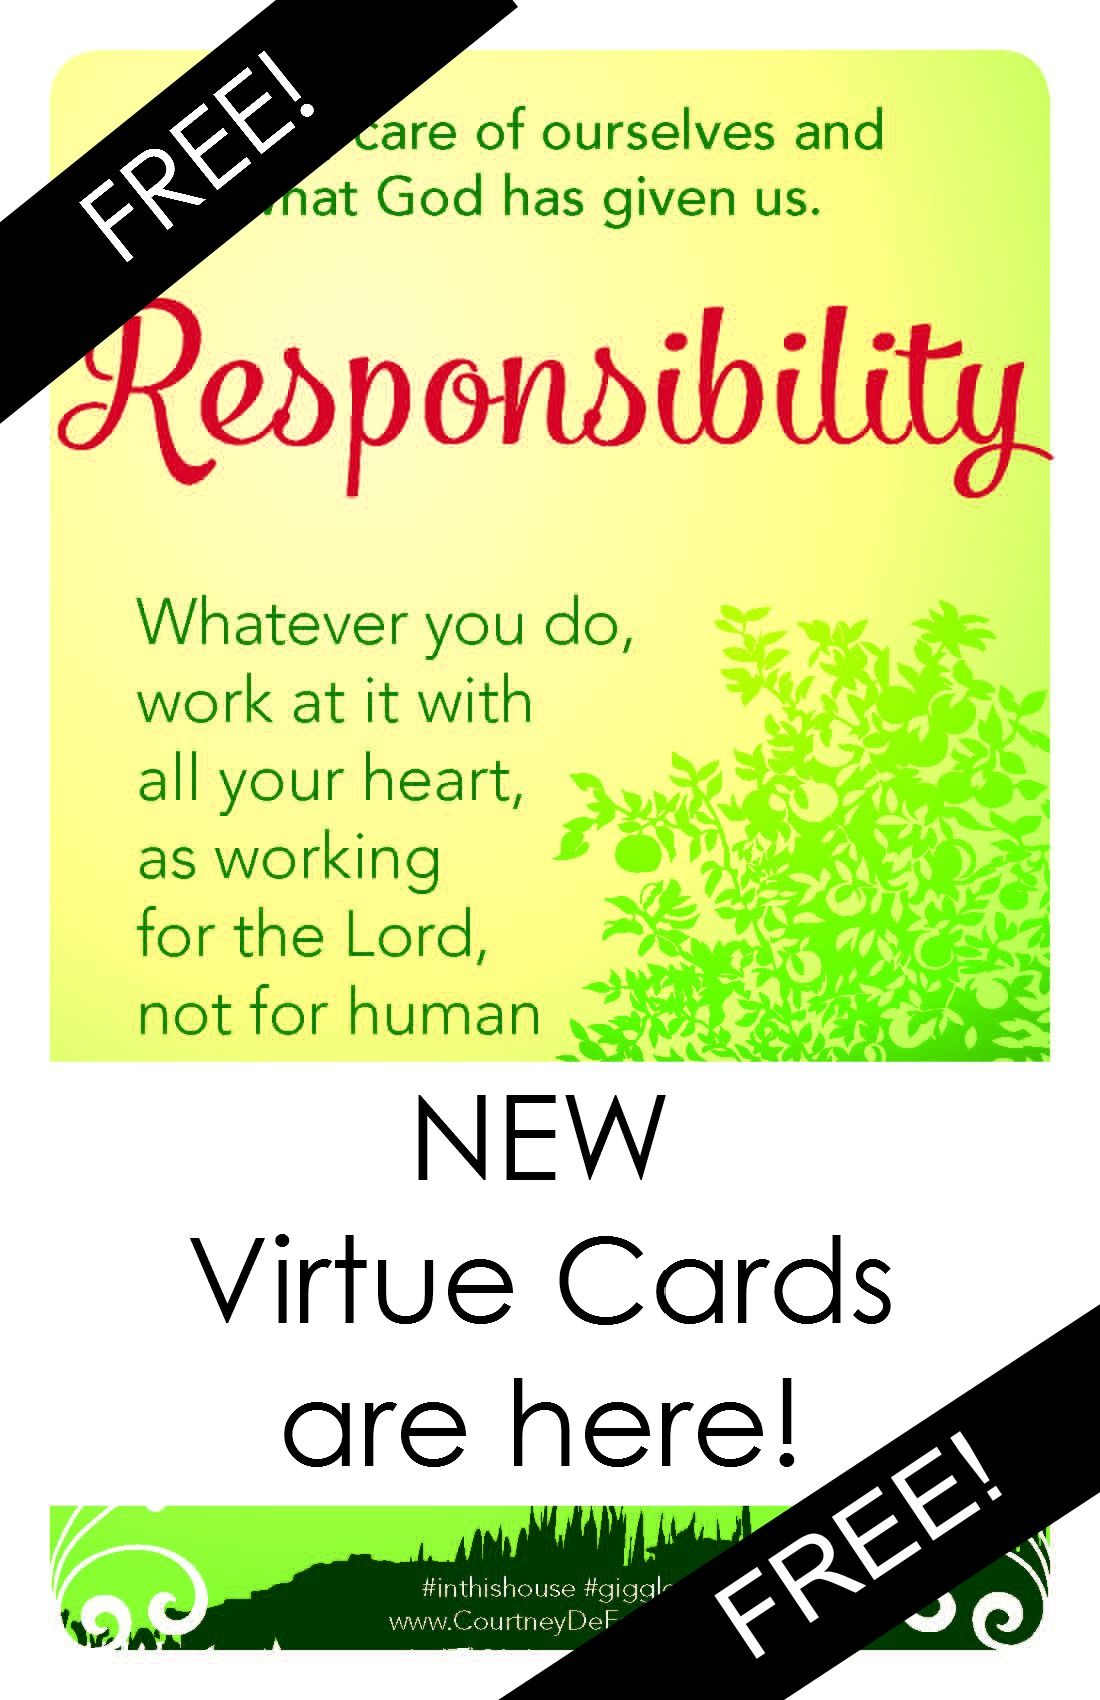 12 Virtues new virtue cards -creator of abc scripture cards. this